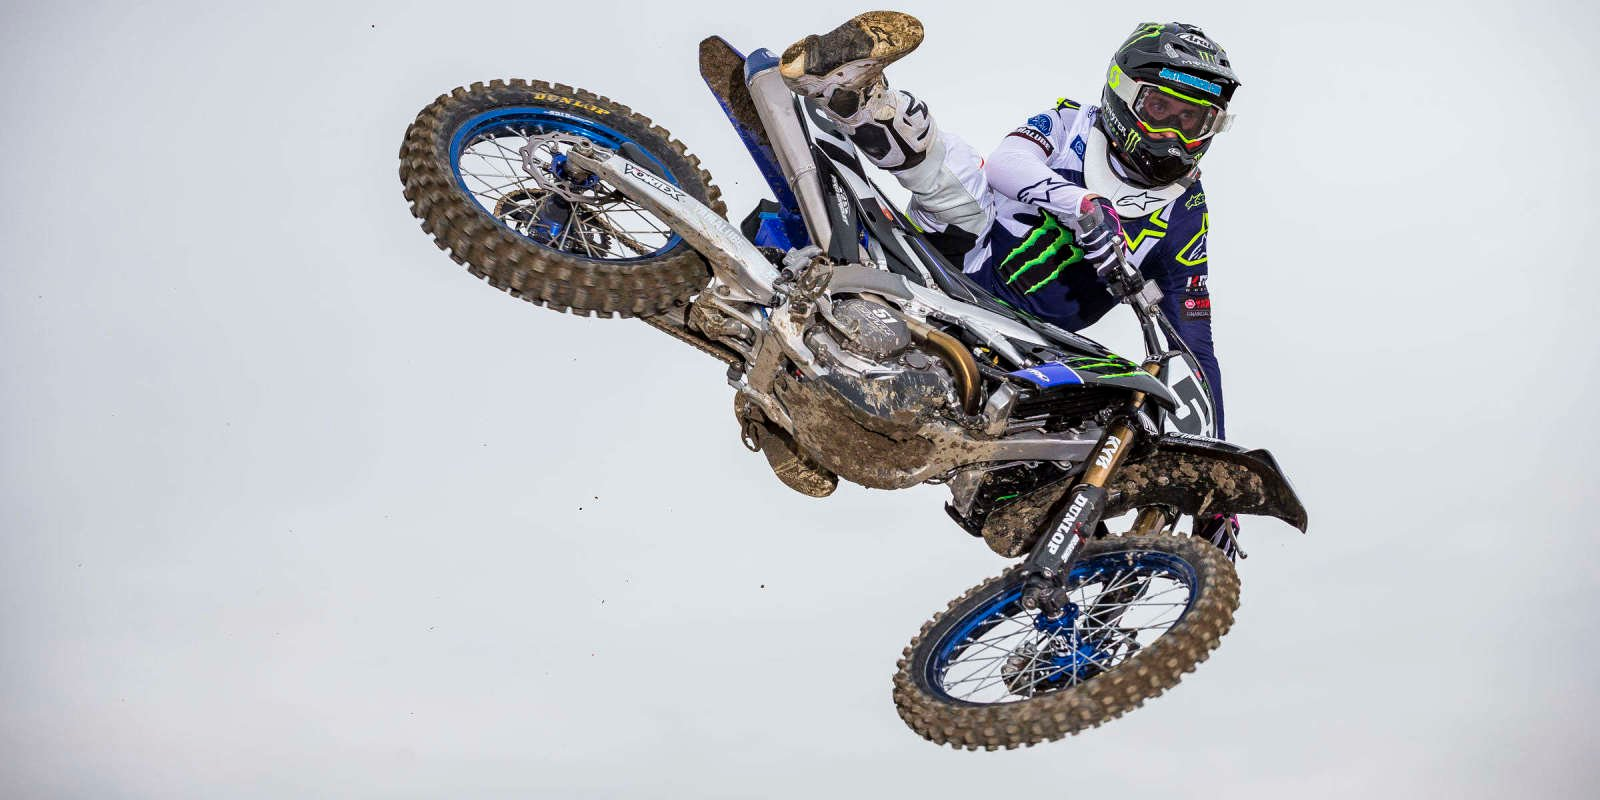 Images of the Monster Energy Yamaha Factory team